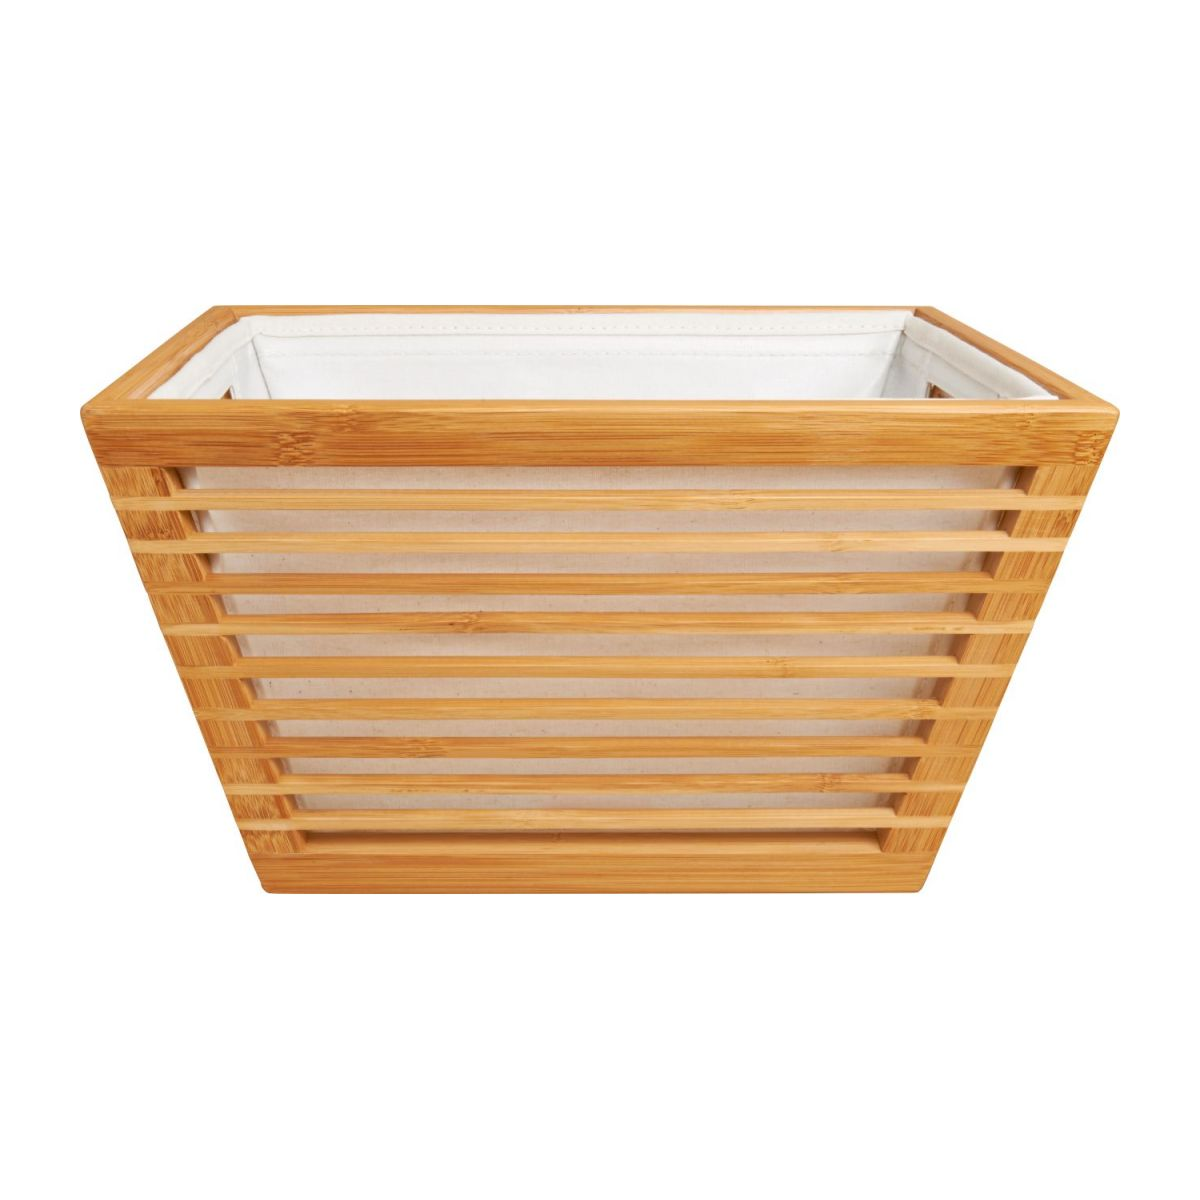 Rectangular bamboo basket 33x25 cm n°2